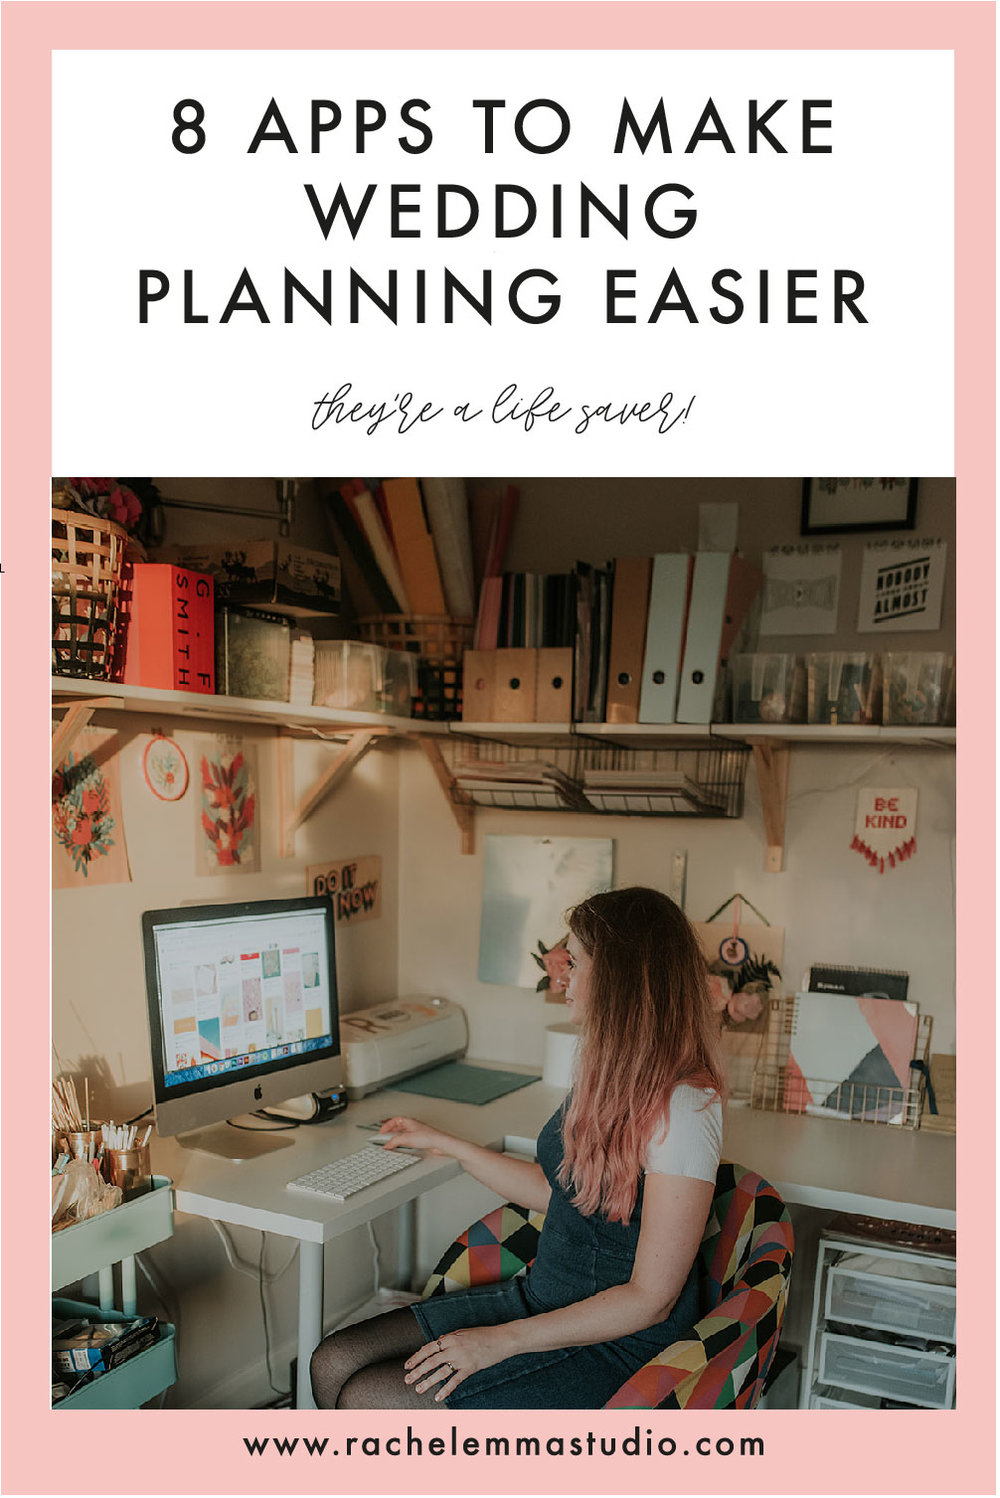 8 apps to make wedding planning easier